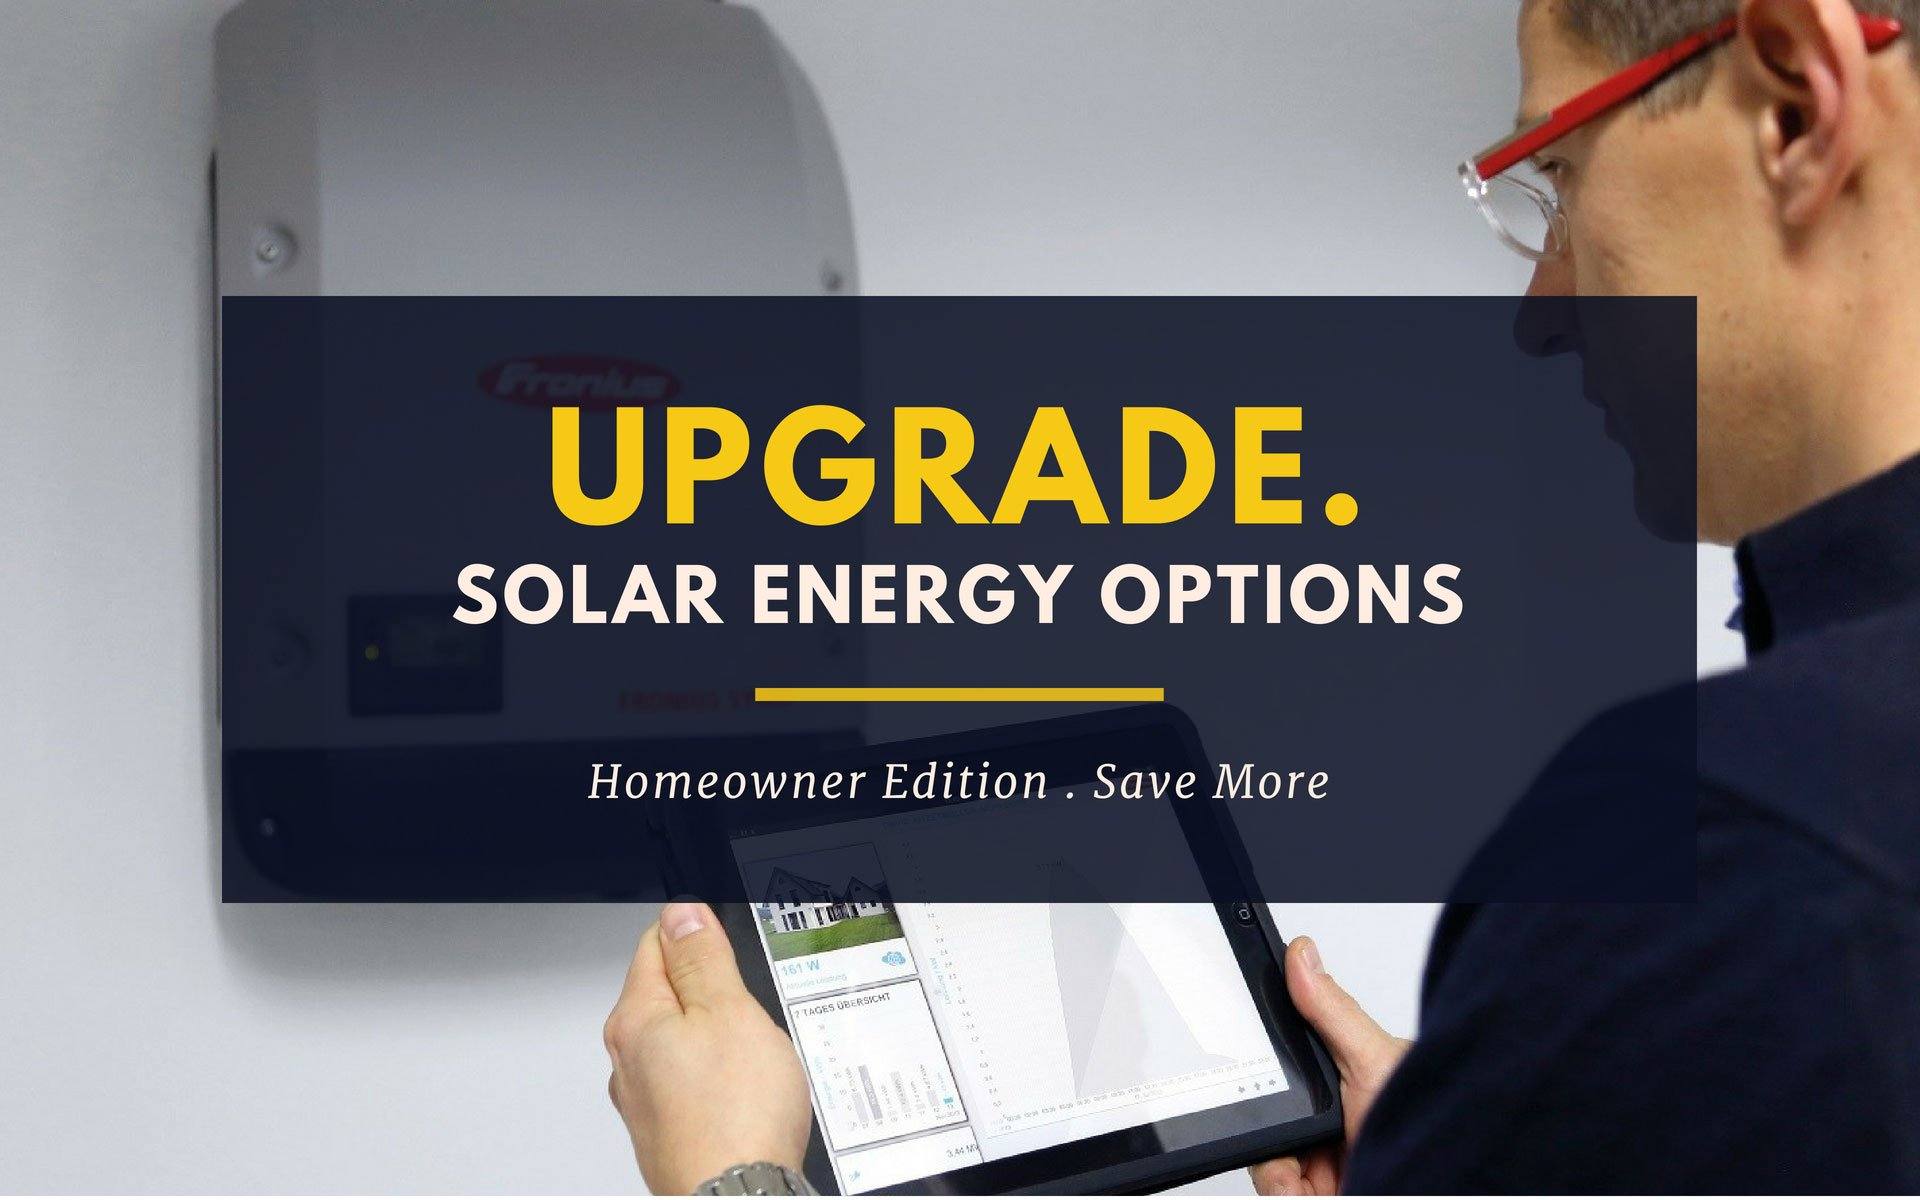 Upgrade Solar Energy Options by Perth Solar Warehouse (PSW Energy)